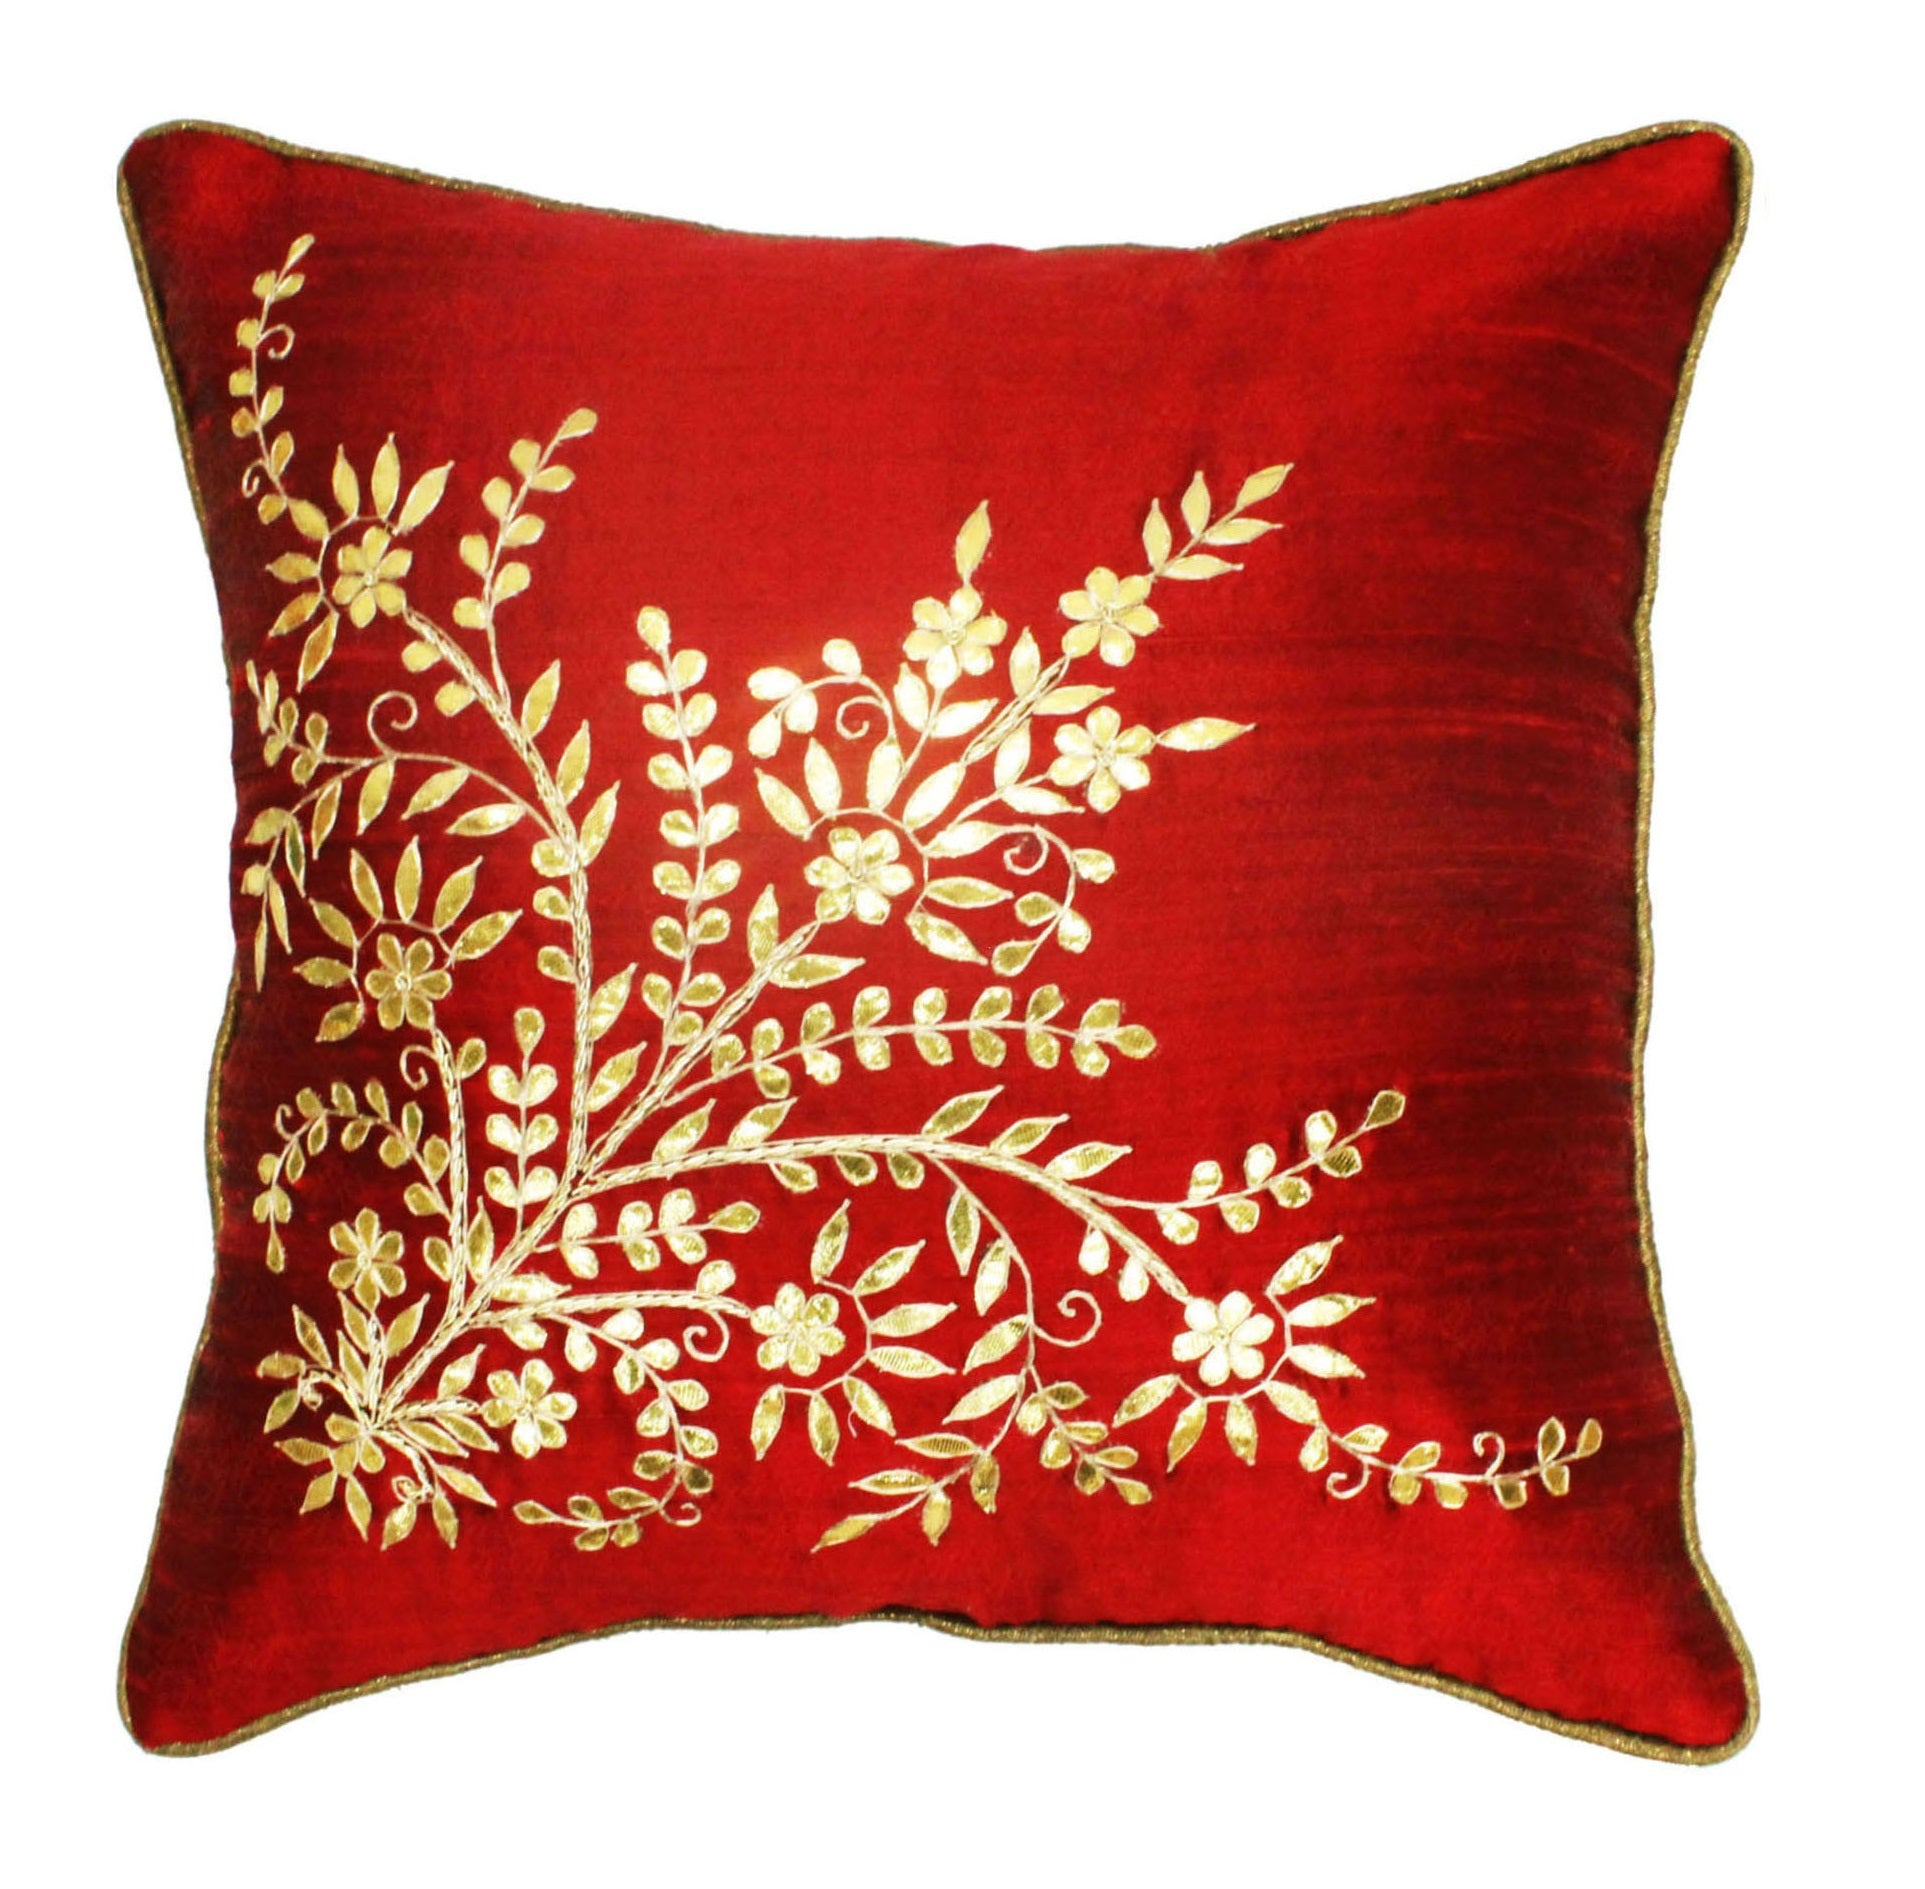 Gota Patti cushion cover - Red - Large floral corner boota cushion cover - 16x16 inches - Dupioni silk